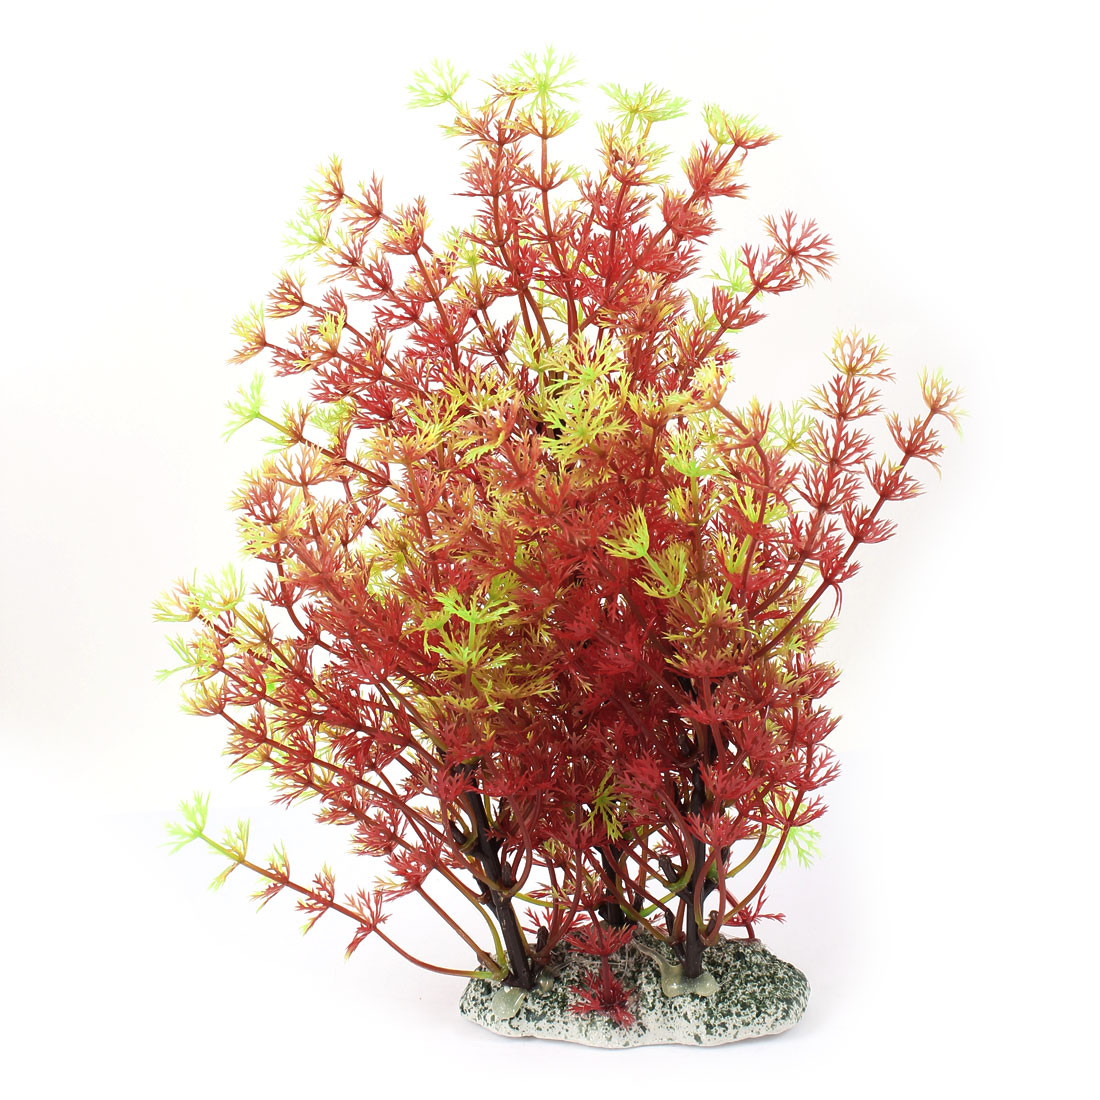 "Aquarium Fish Tank Ornament Landscaping Artificial Emulational Underwater Water Plant Grass Decor Yellow Green Red 9"" Height"